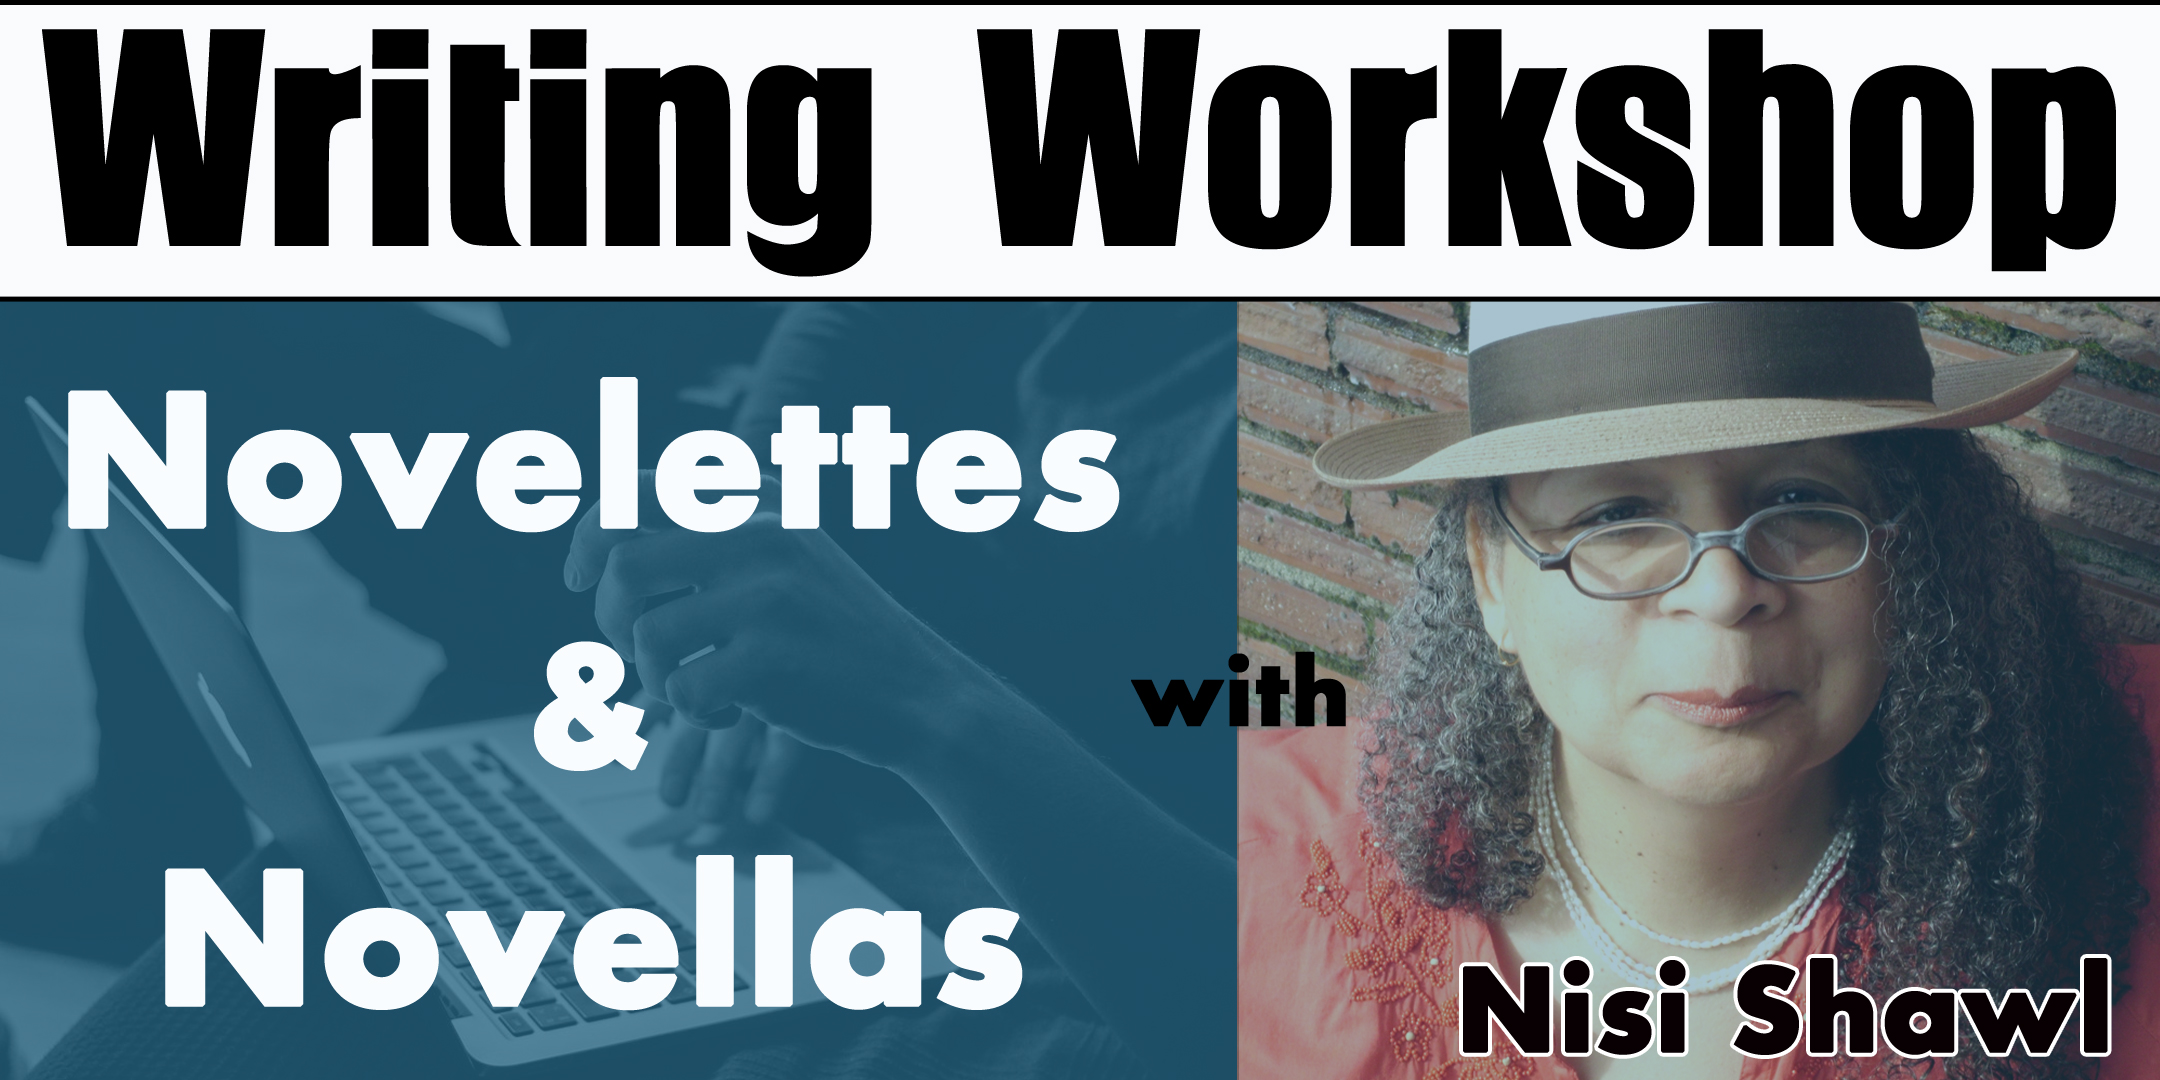 Novelette and Novella Writing Workshop with Nisi Shawl